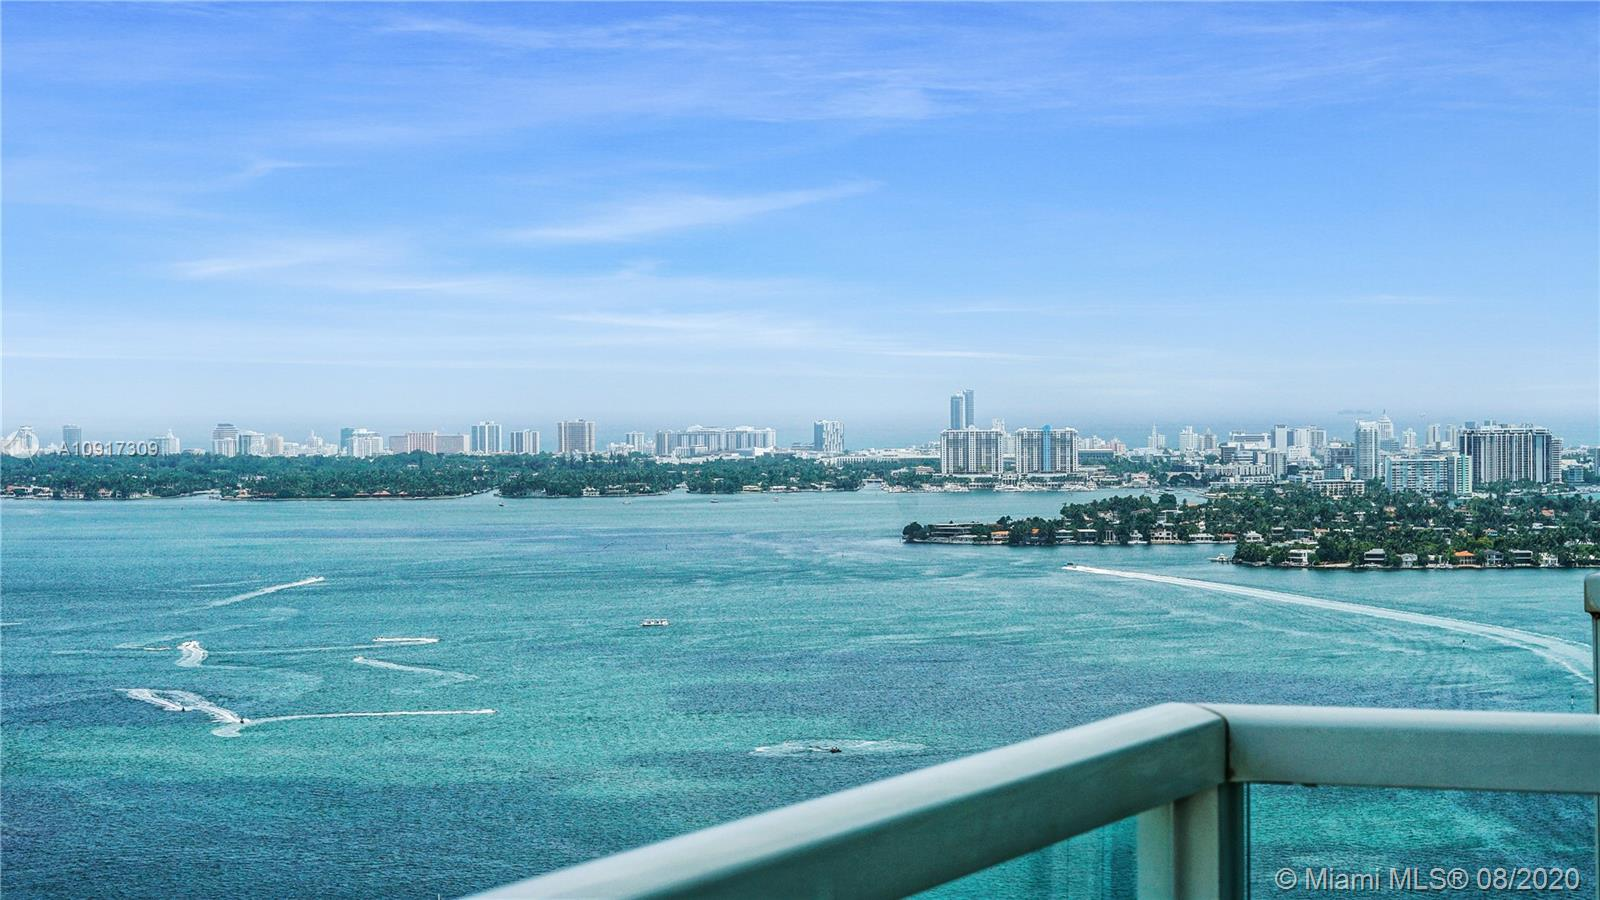 Phenomenal True 3 BR and full 3 BR condo on the 40th floor boasting the Best Views the Downtown Edgewater area has to offer. Bay and water views from two balconies and lots of natural light. Ceramic Tile throughout, custom made walk in closets in all rooms, his and her showers in master. Two pools, two story gym with sauna, multiple party rooms and common areas. Water, cable, sewer, trash, basic cable, and internet included in monthly maintenance. Perfect location across the street from Margaret Pace Park. Minutes to Brickell, the beaches, MIA airport, Midtown, Wynwood. Video Walk through Available.